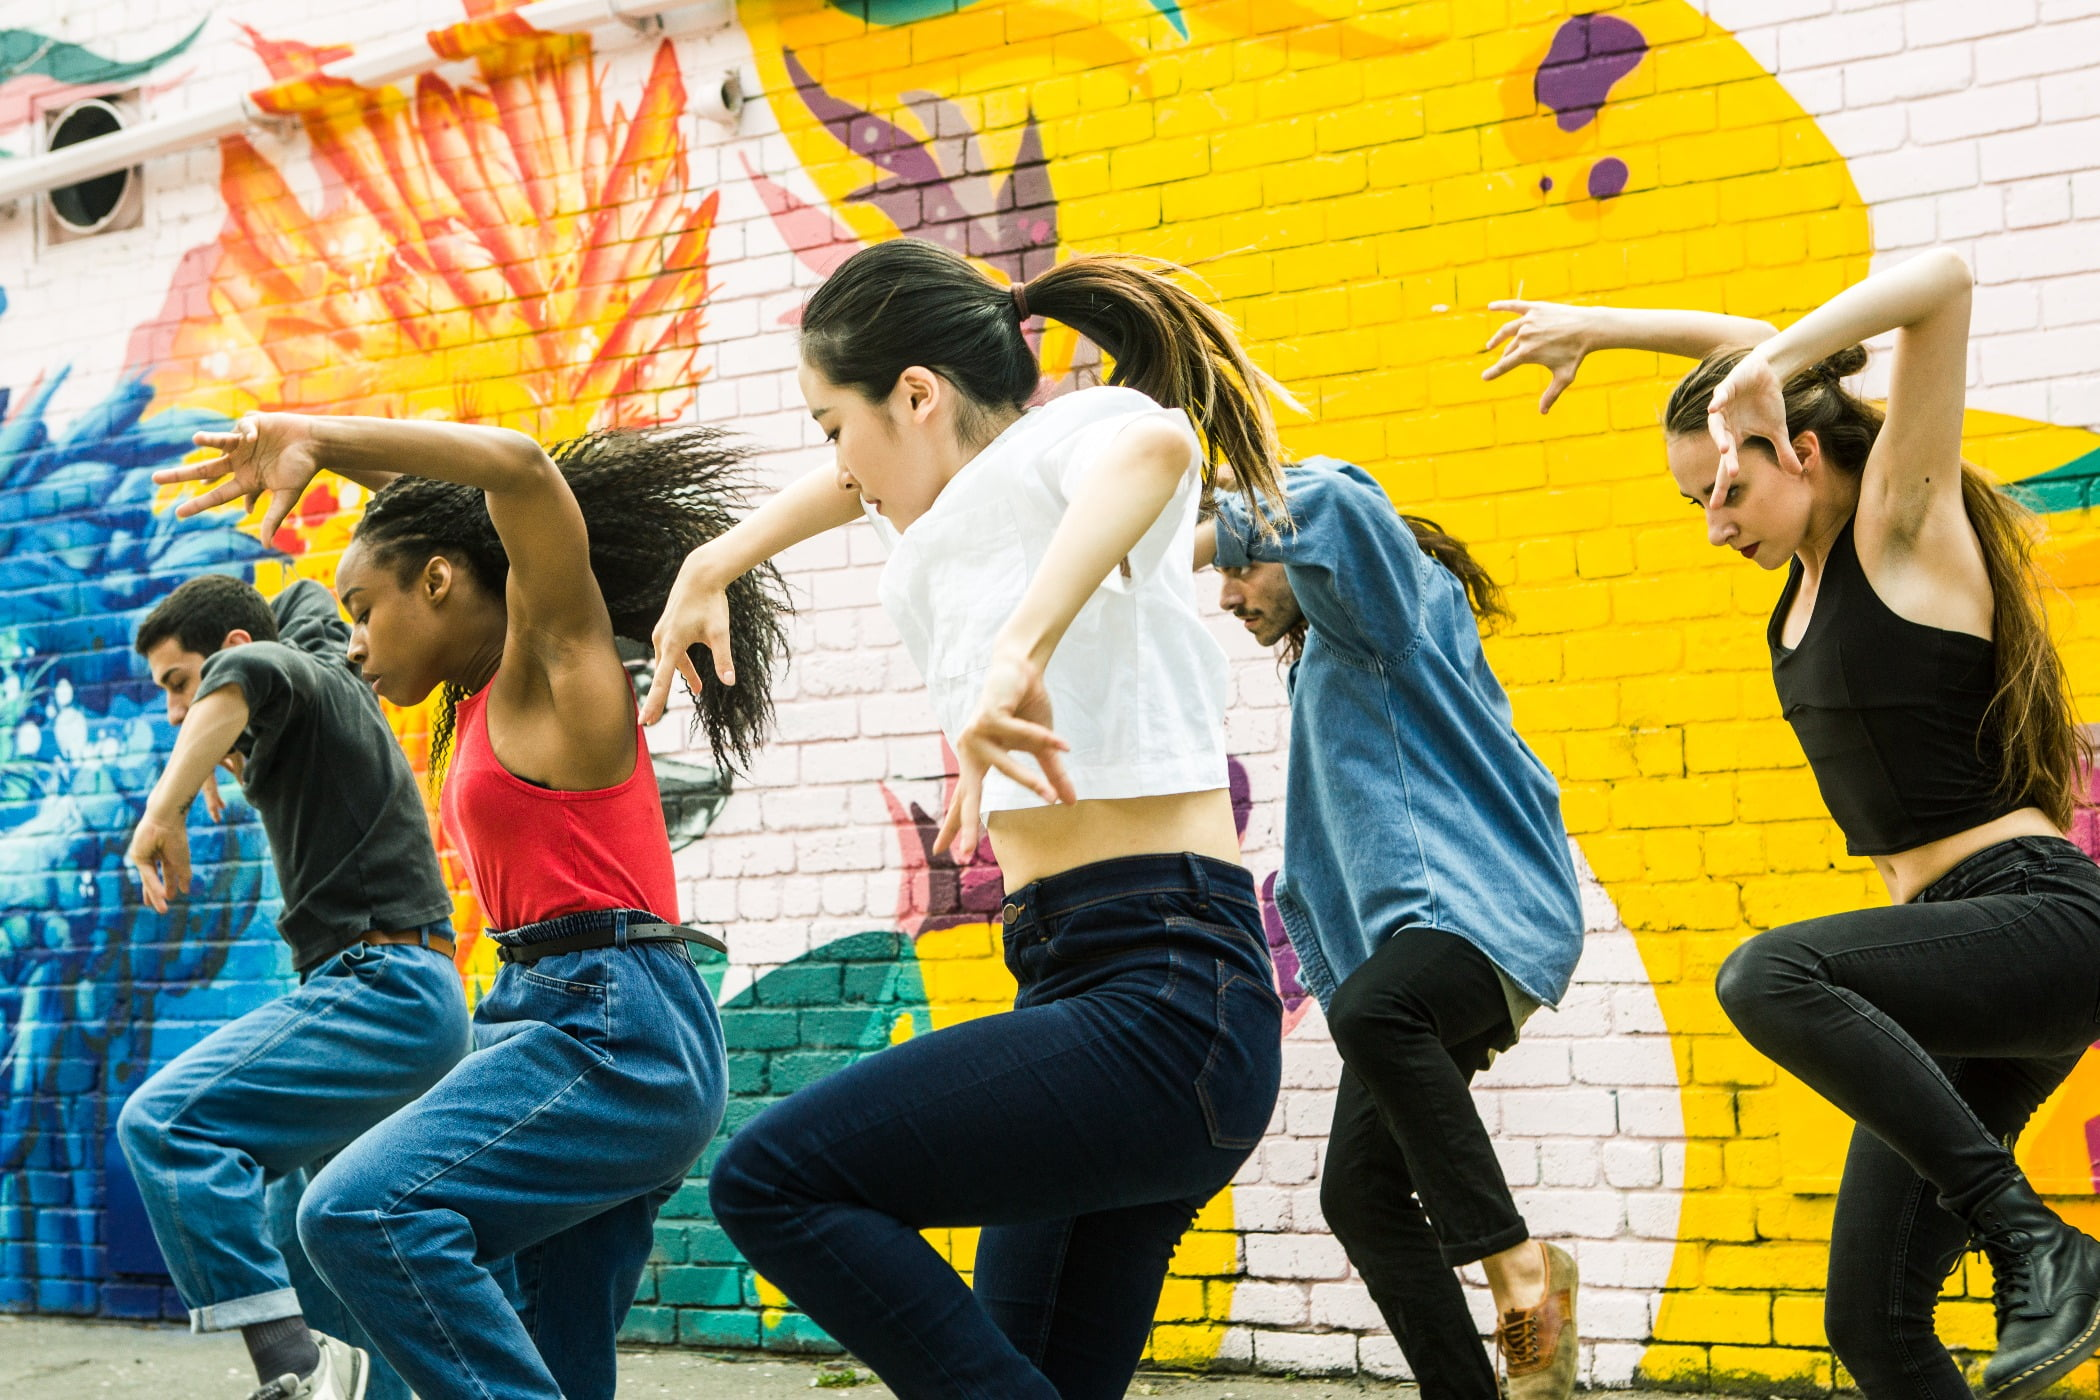 Performing arts, Social group, Trousers, Shoe, Yellow, Dance, Entertainment, Happy, Artist, Leisure